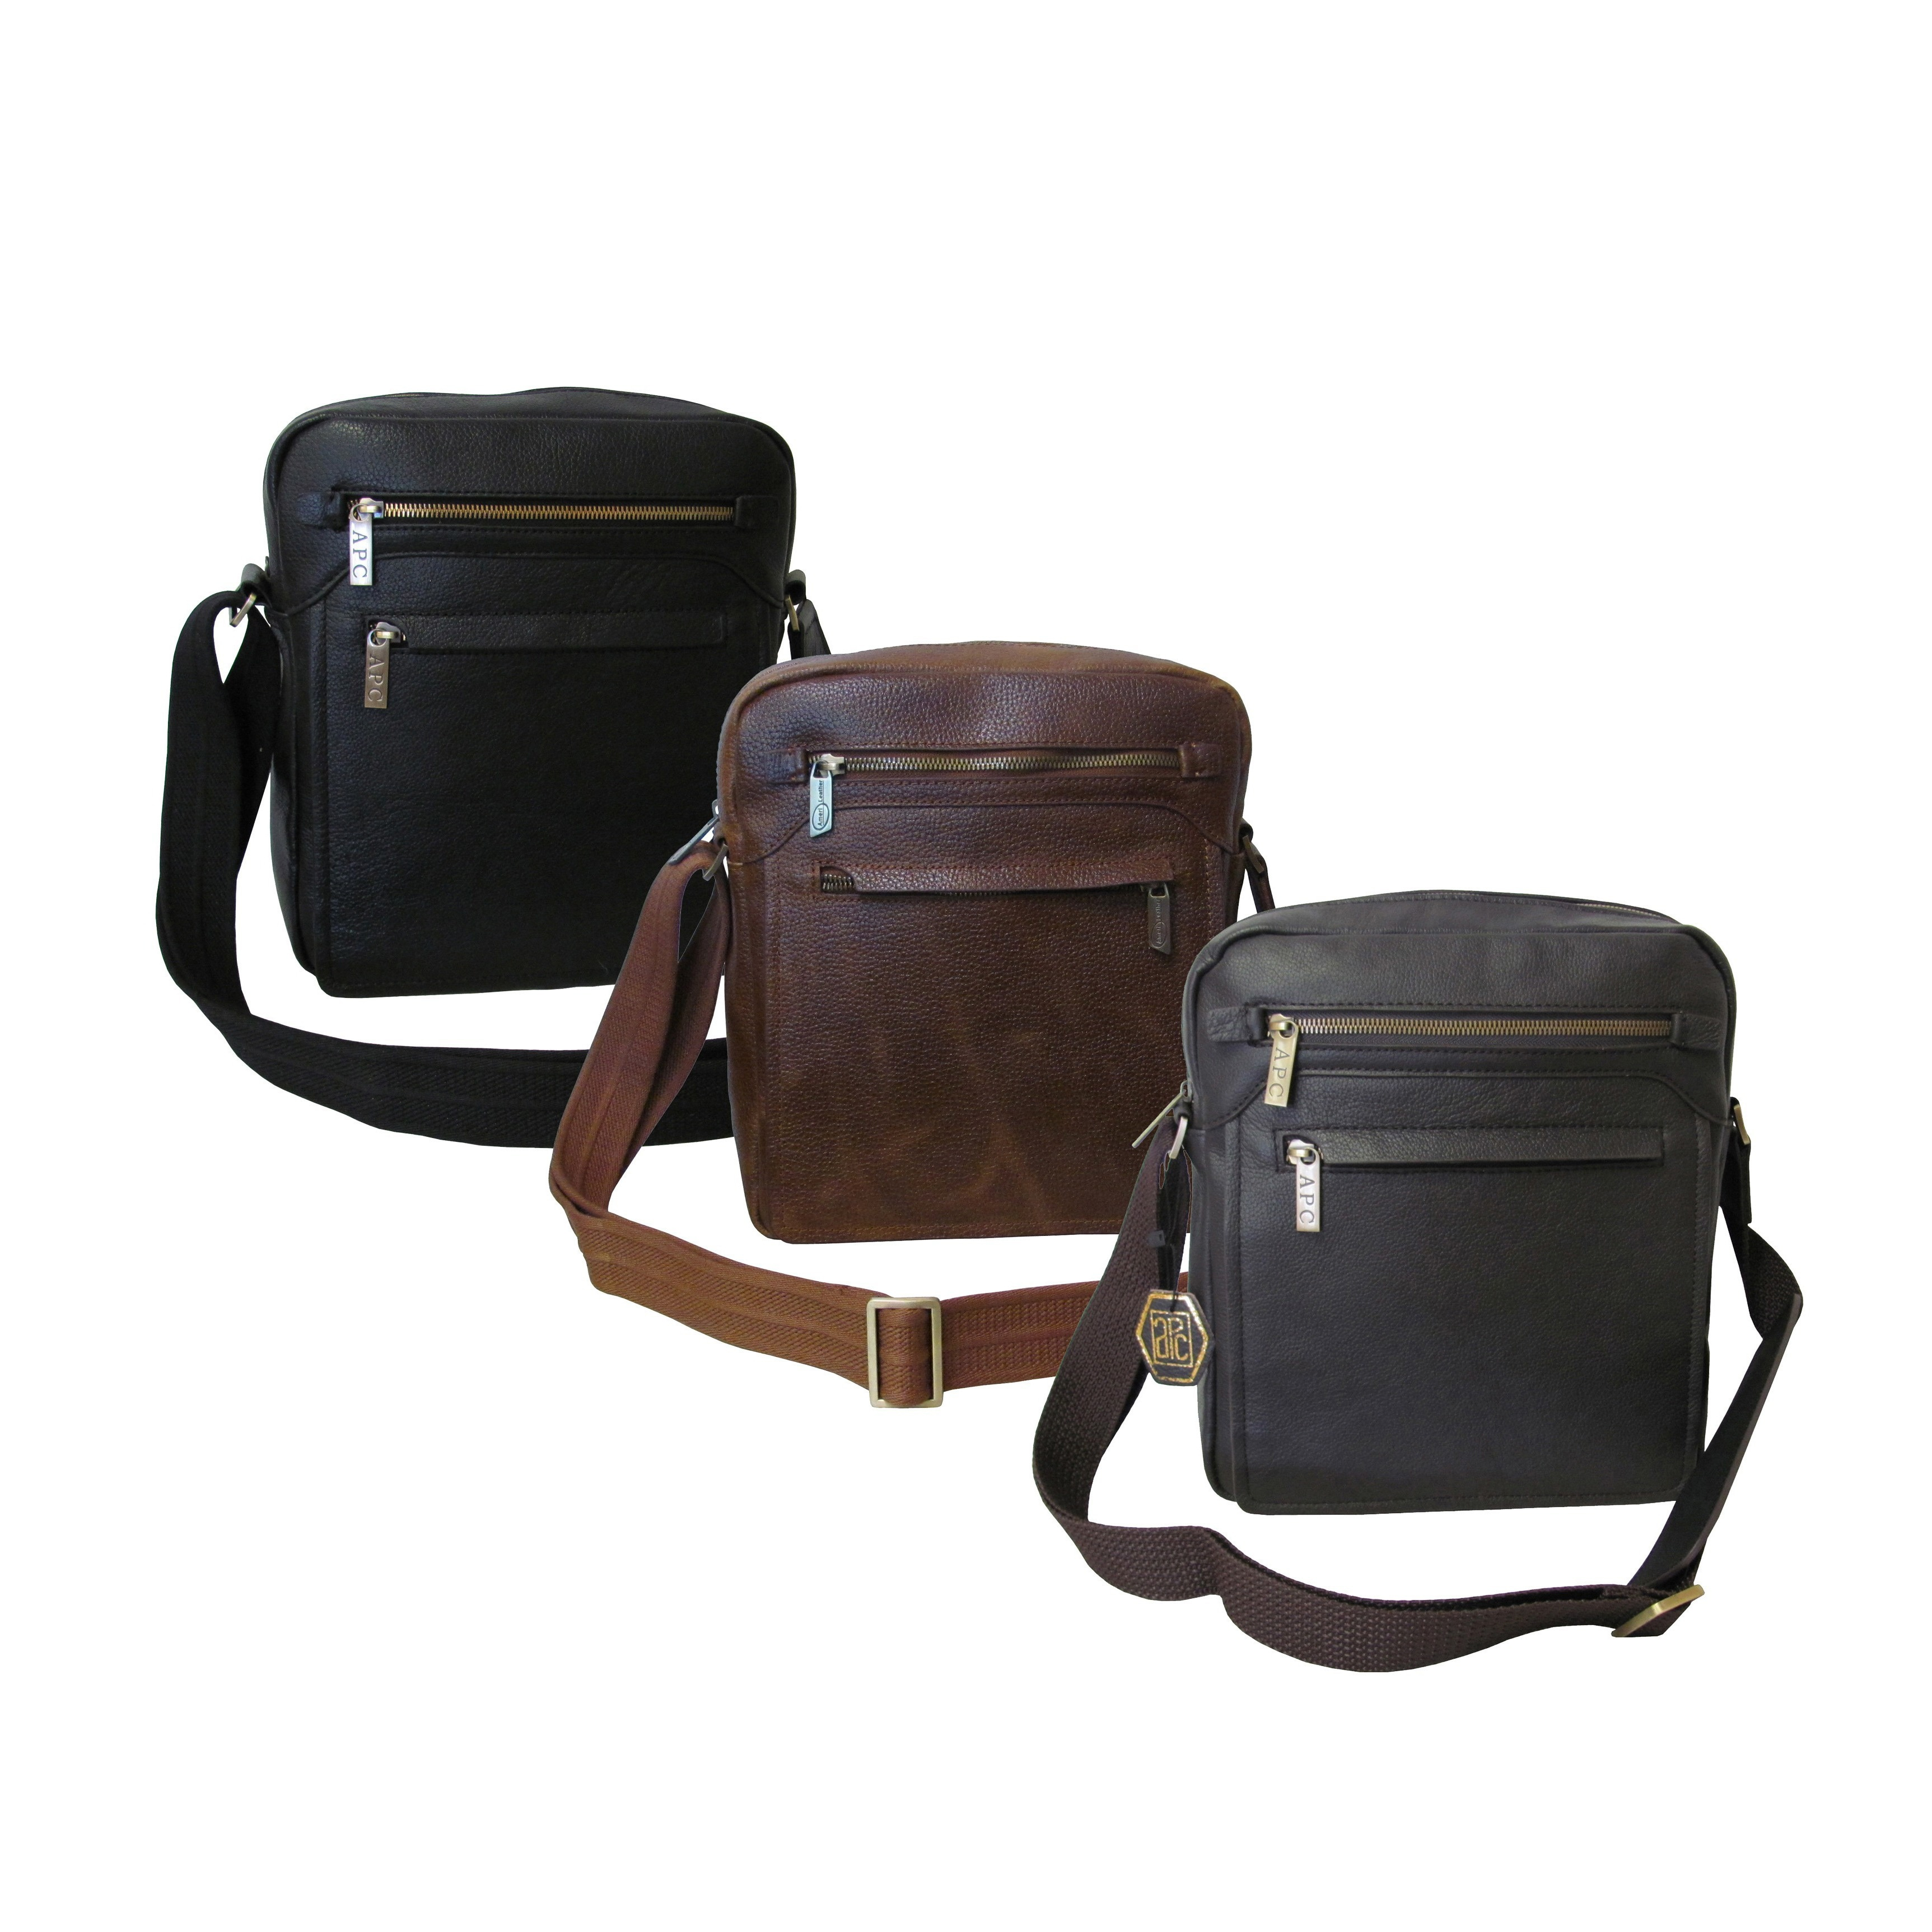 Amerileather Front Flap Leather Women S Messenger Bag With Key Lock